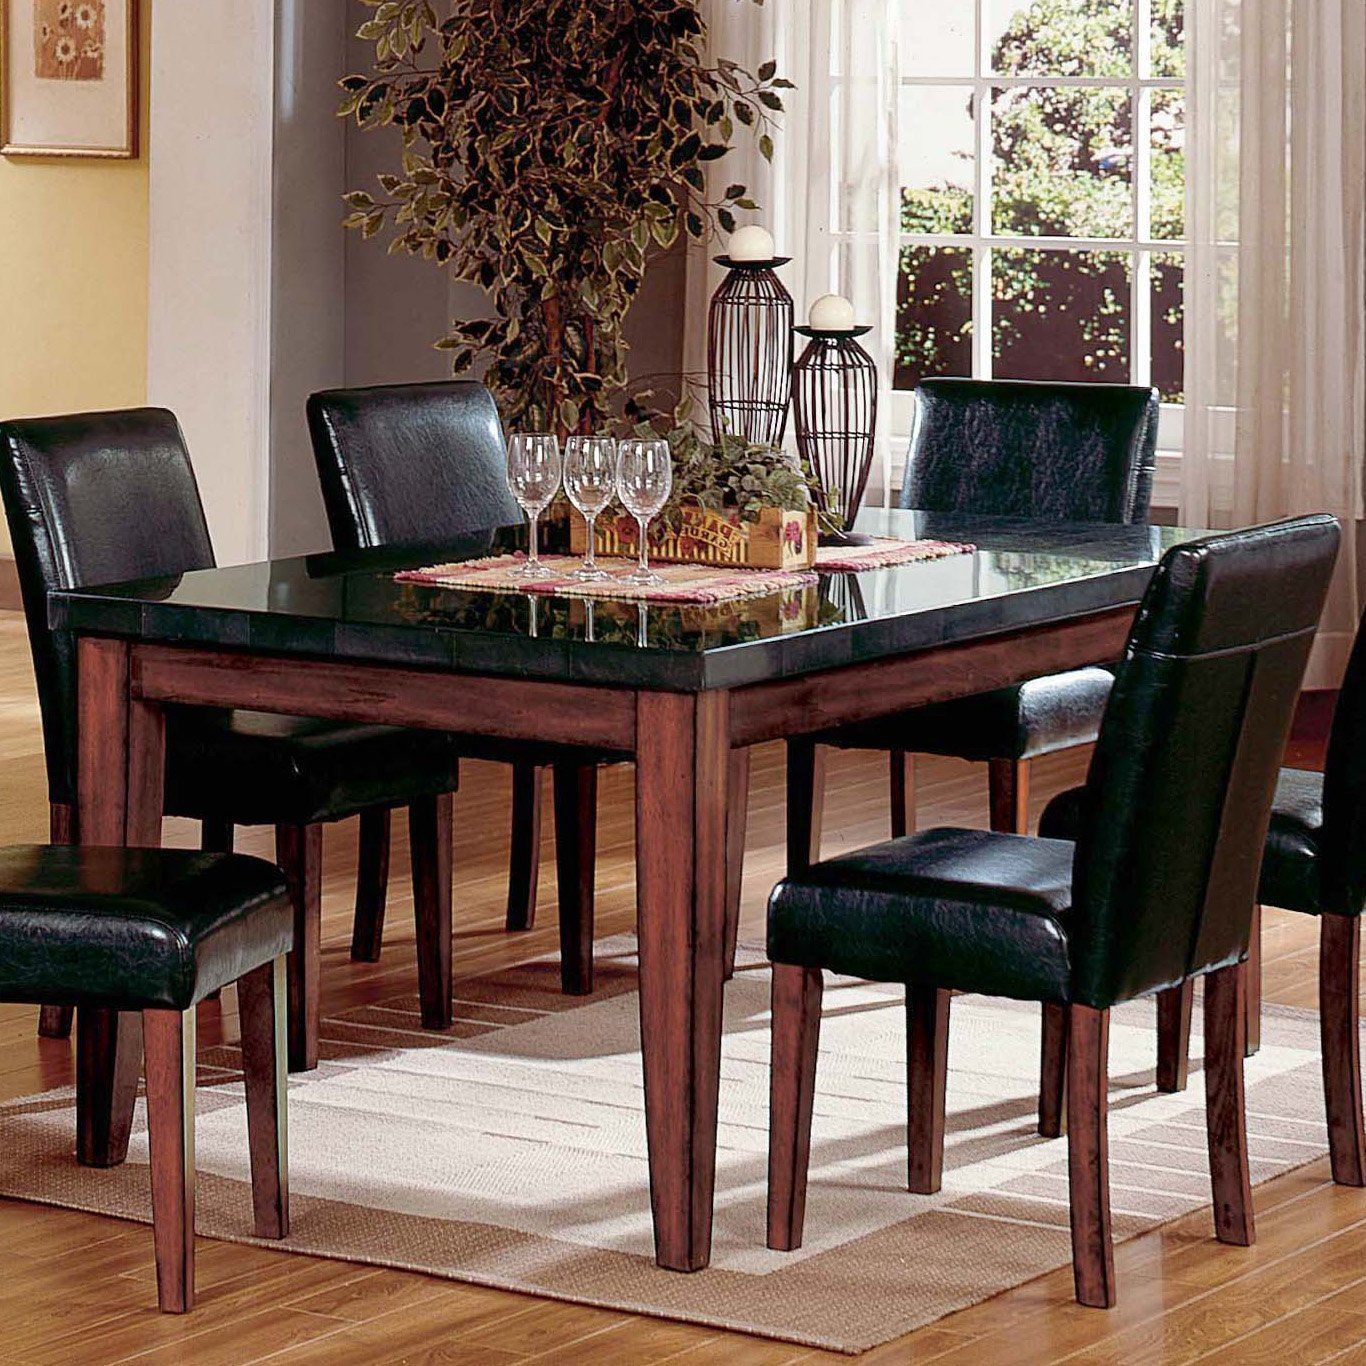 Granite Dining Room Furniture Gorgeous Have To Have Itsteve Silver Montibello Granite Top Rectangular Design Ideas